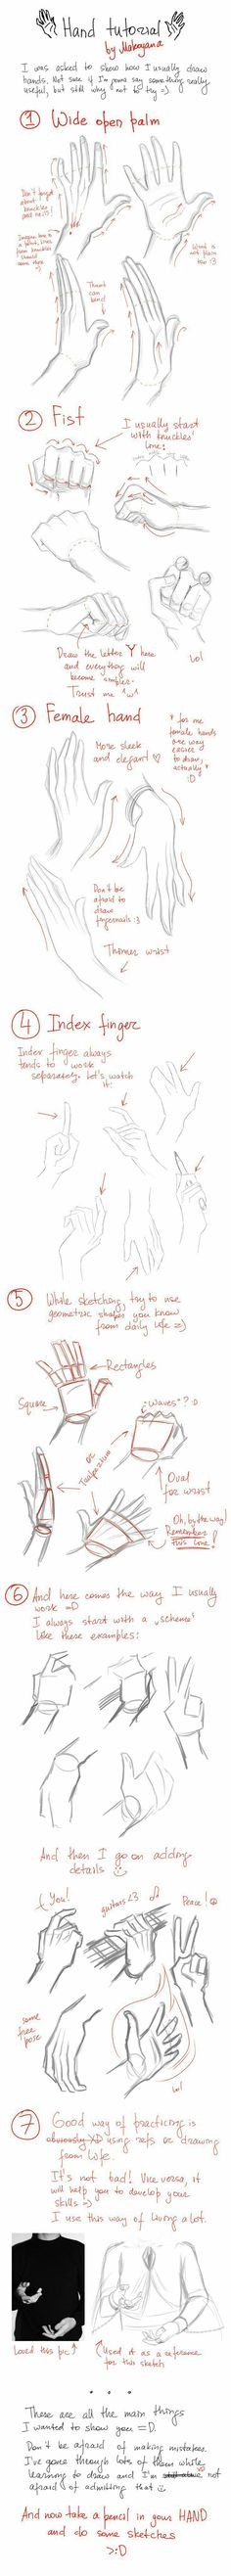 Hand Tutorial, text, hands; How to Draw Manga/Anime